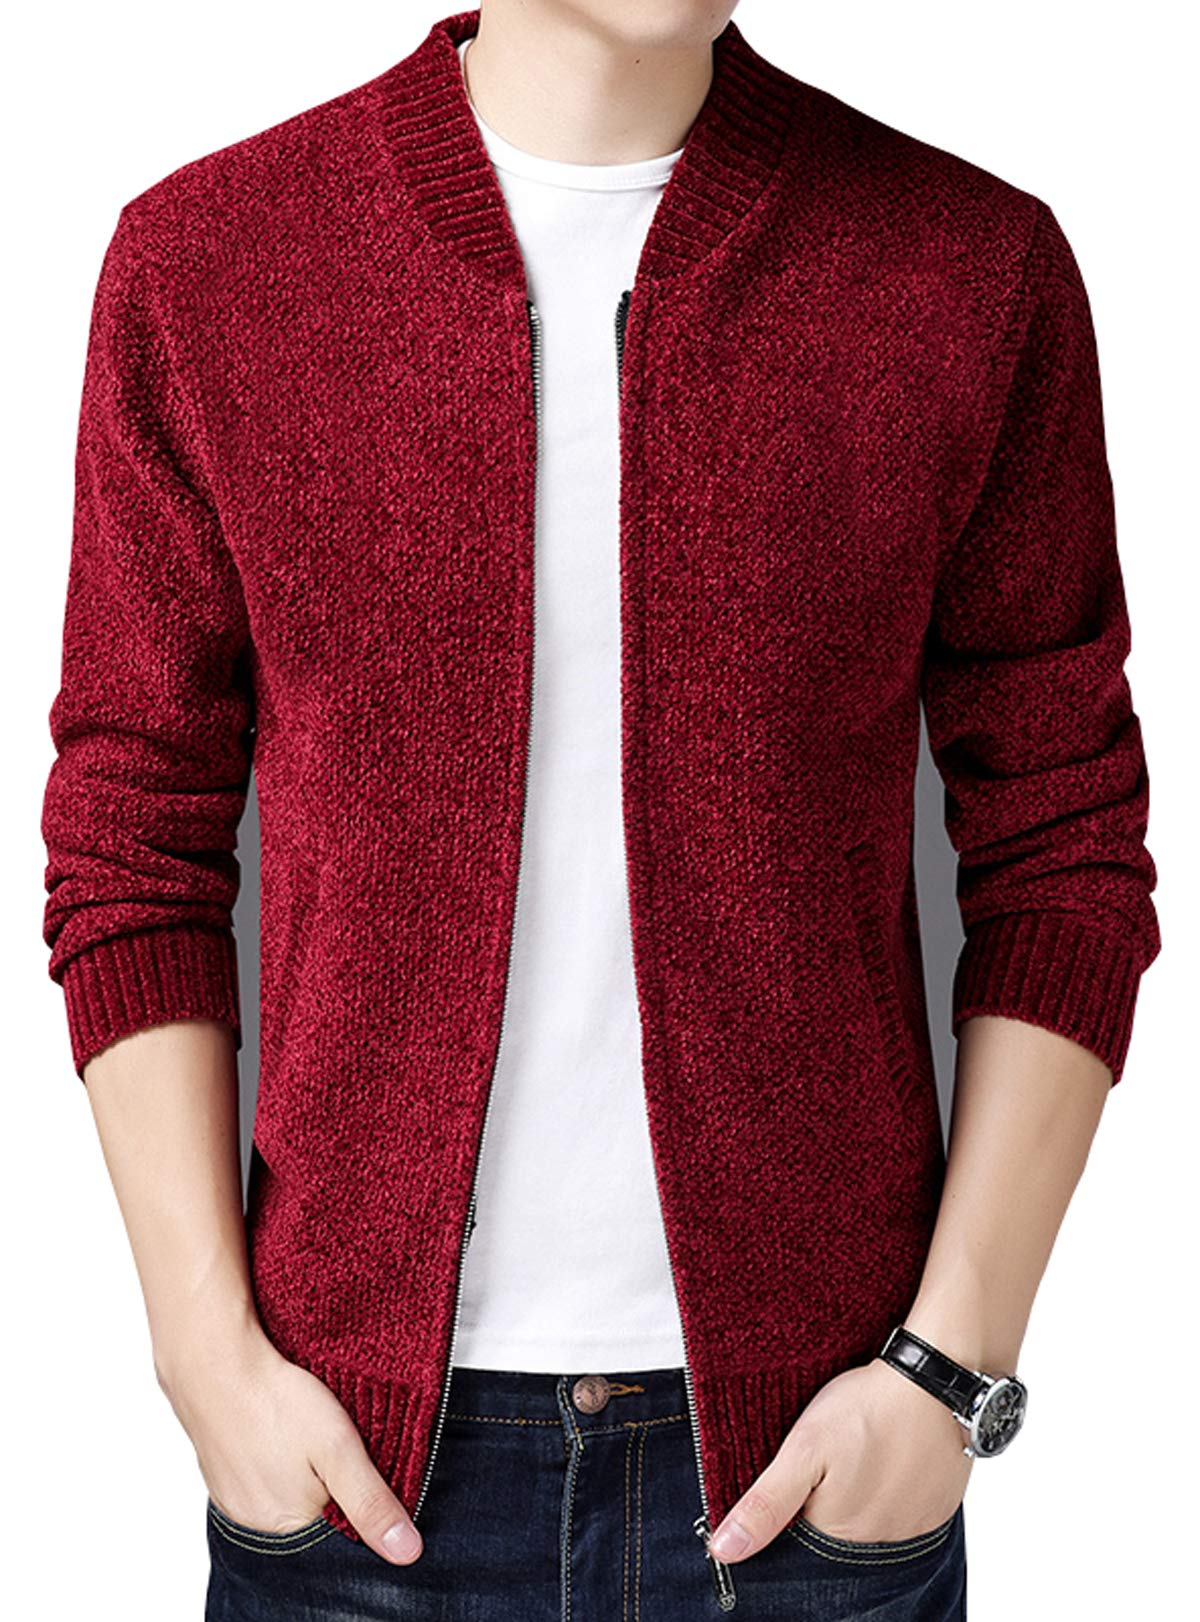 6649be1f303 HOWON Men s Casual Thick Knitted Zipper Cardigan Sweater Red L